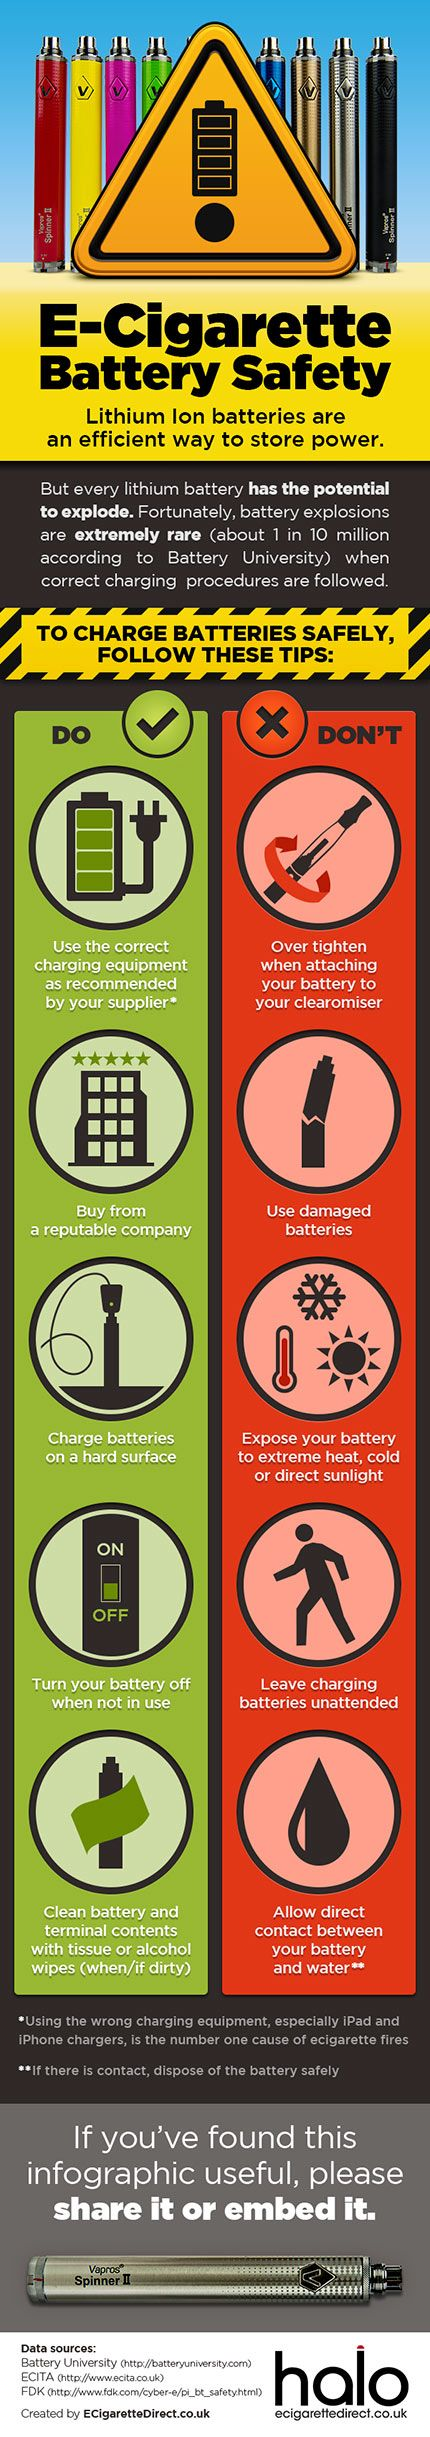 To enjoy vaping safely, follow the simple rules in this infographic. #Vapeon #Vaping